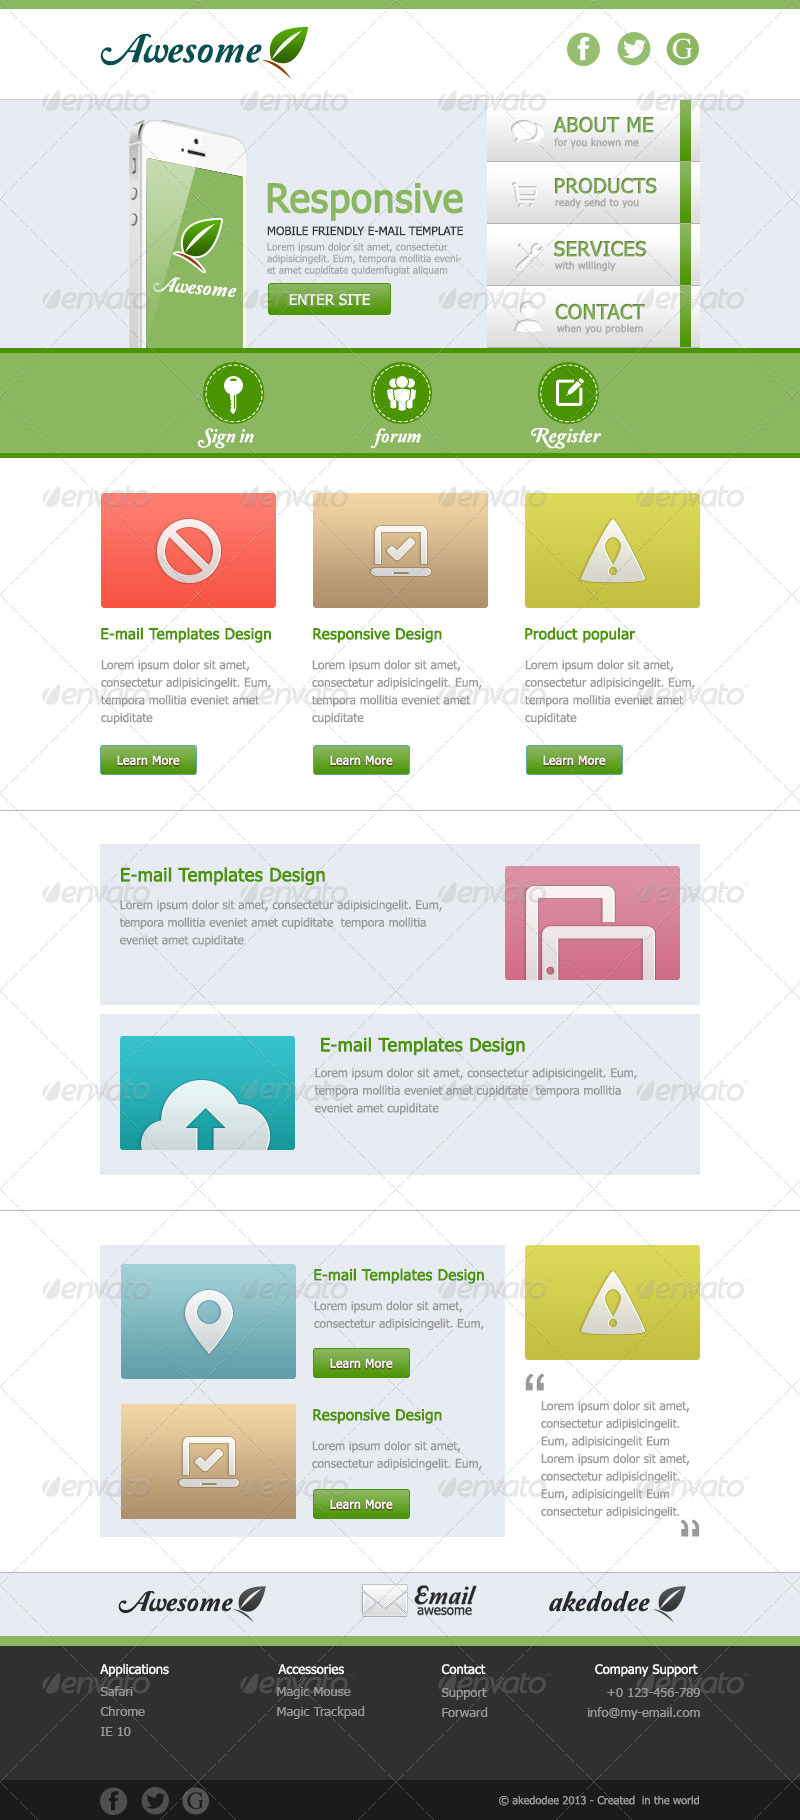 Awesome e mail template design vol 1 by akedodee for Mail designer pro templates